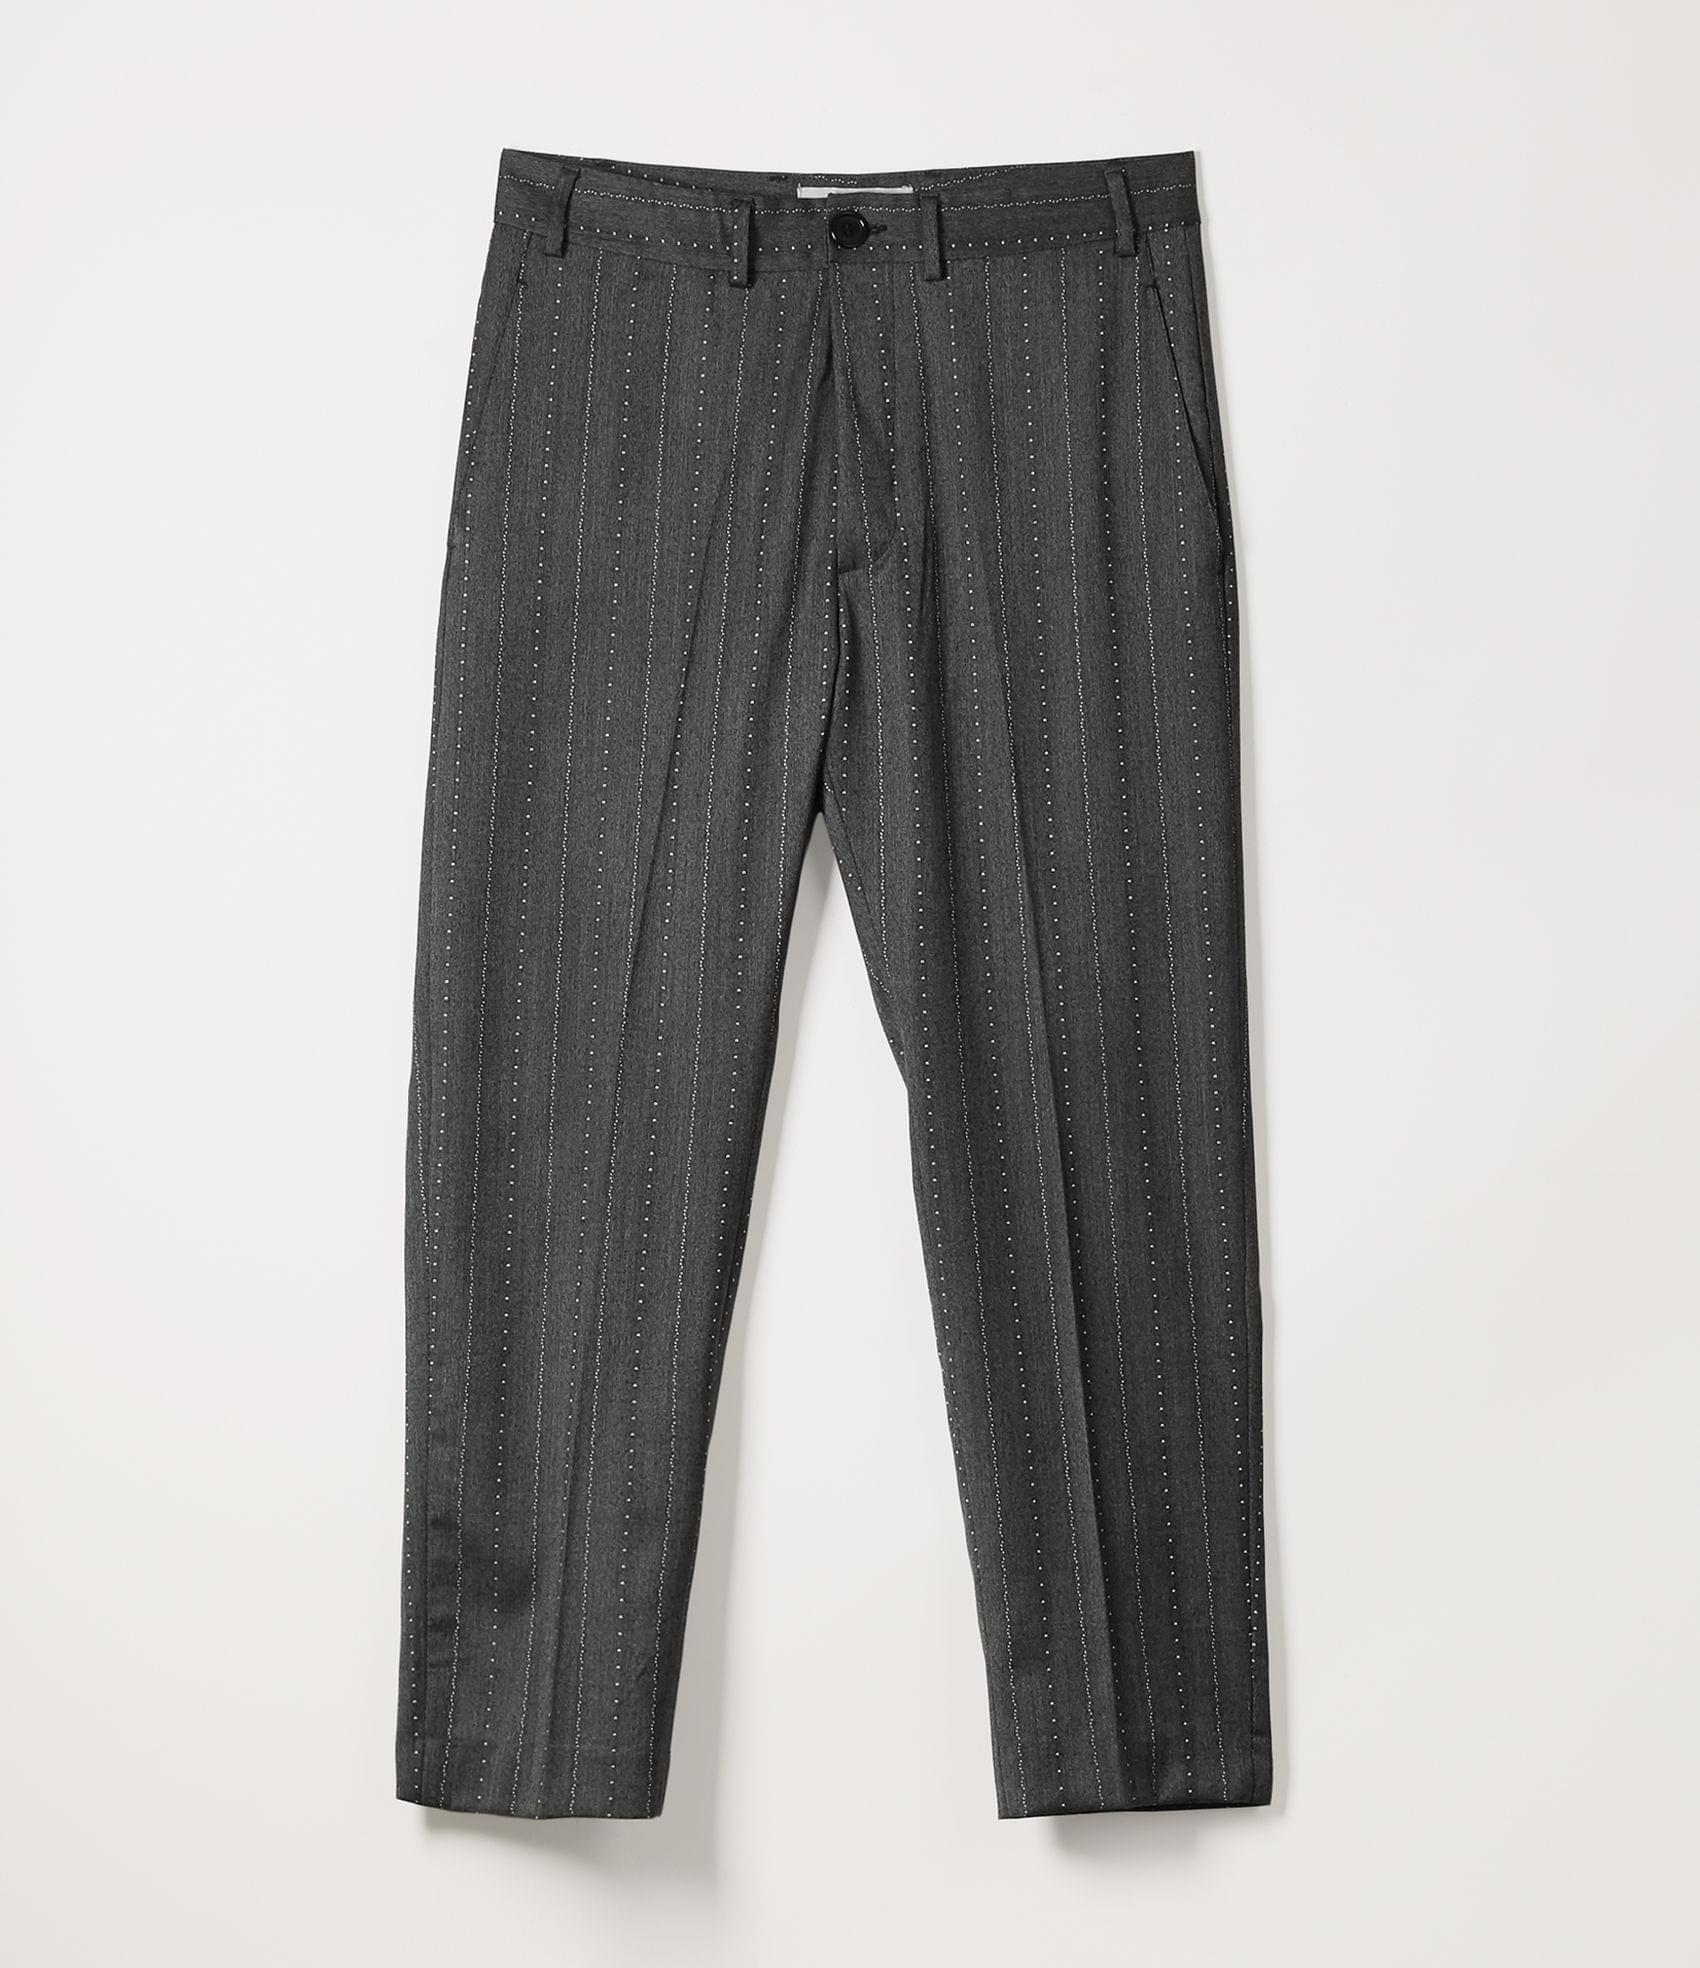 Vivienne Westwood JAMES BOND TROUSERS DOTTED PINSTRIPE